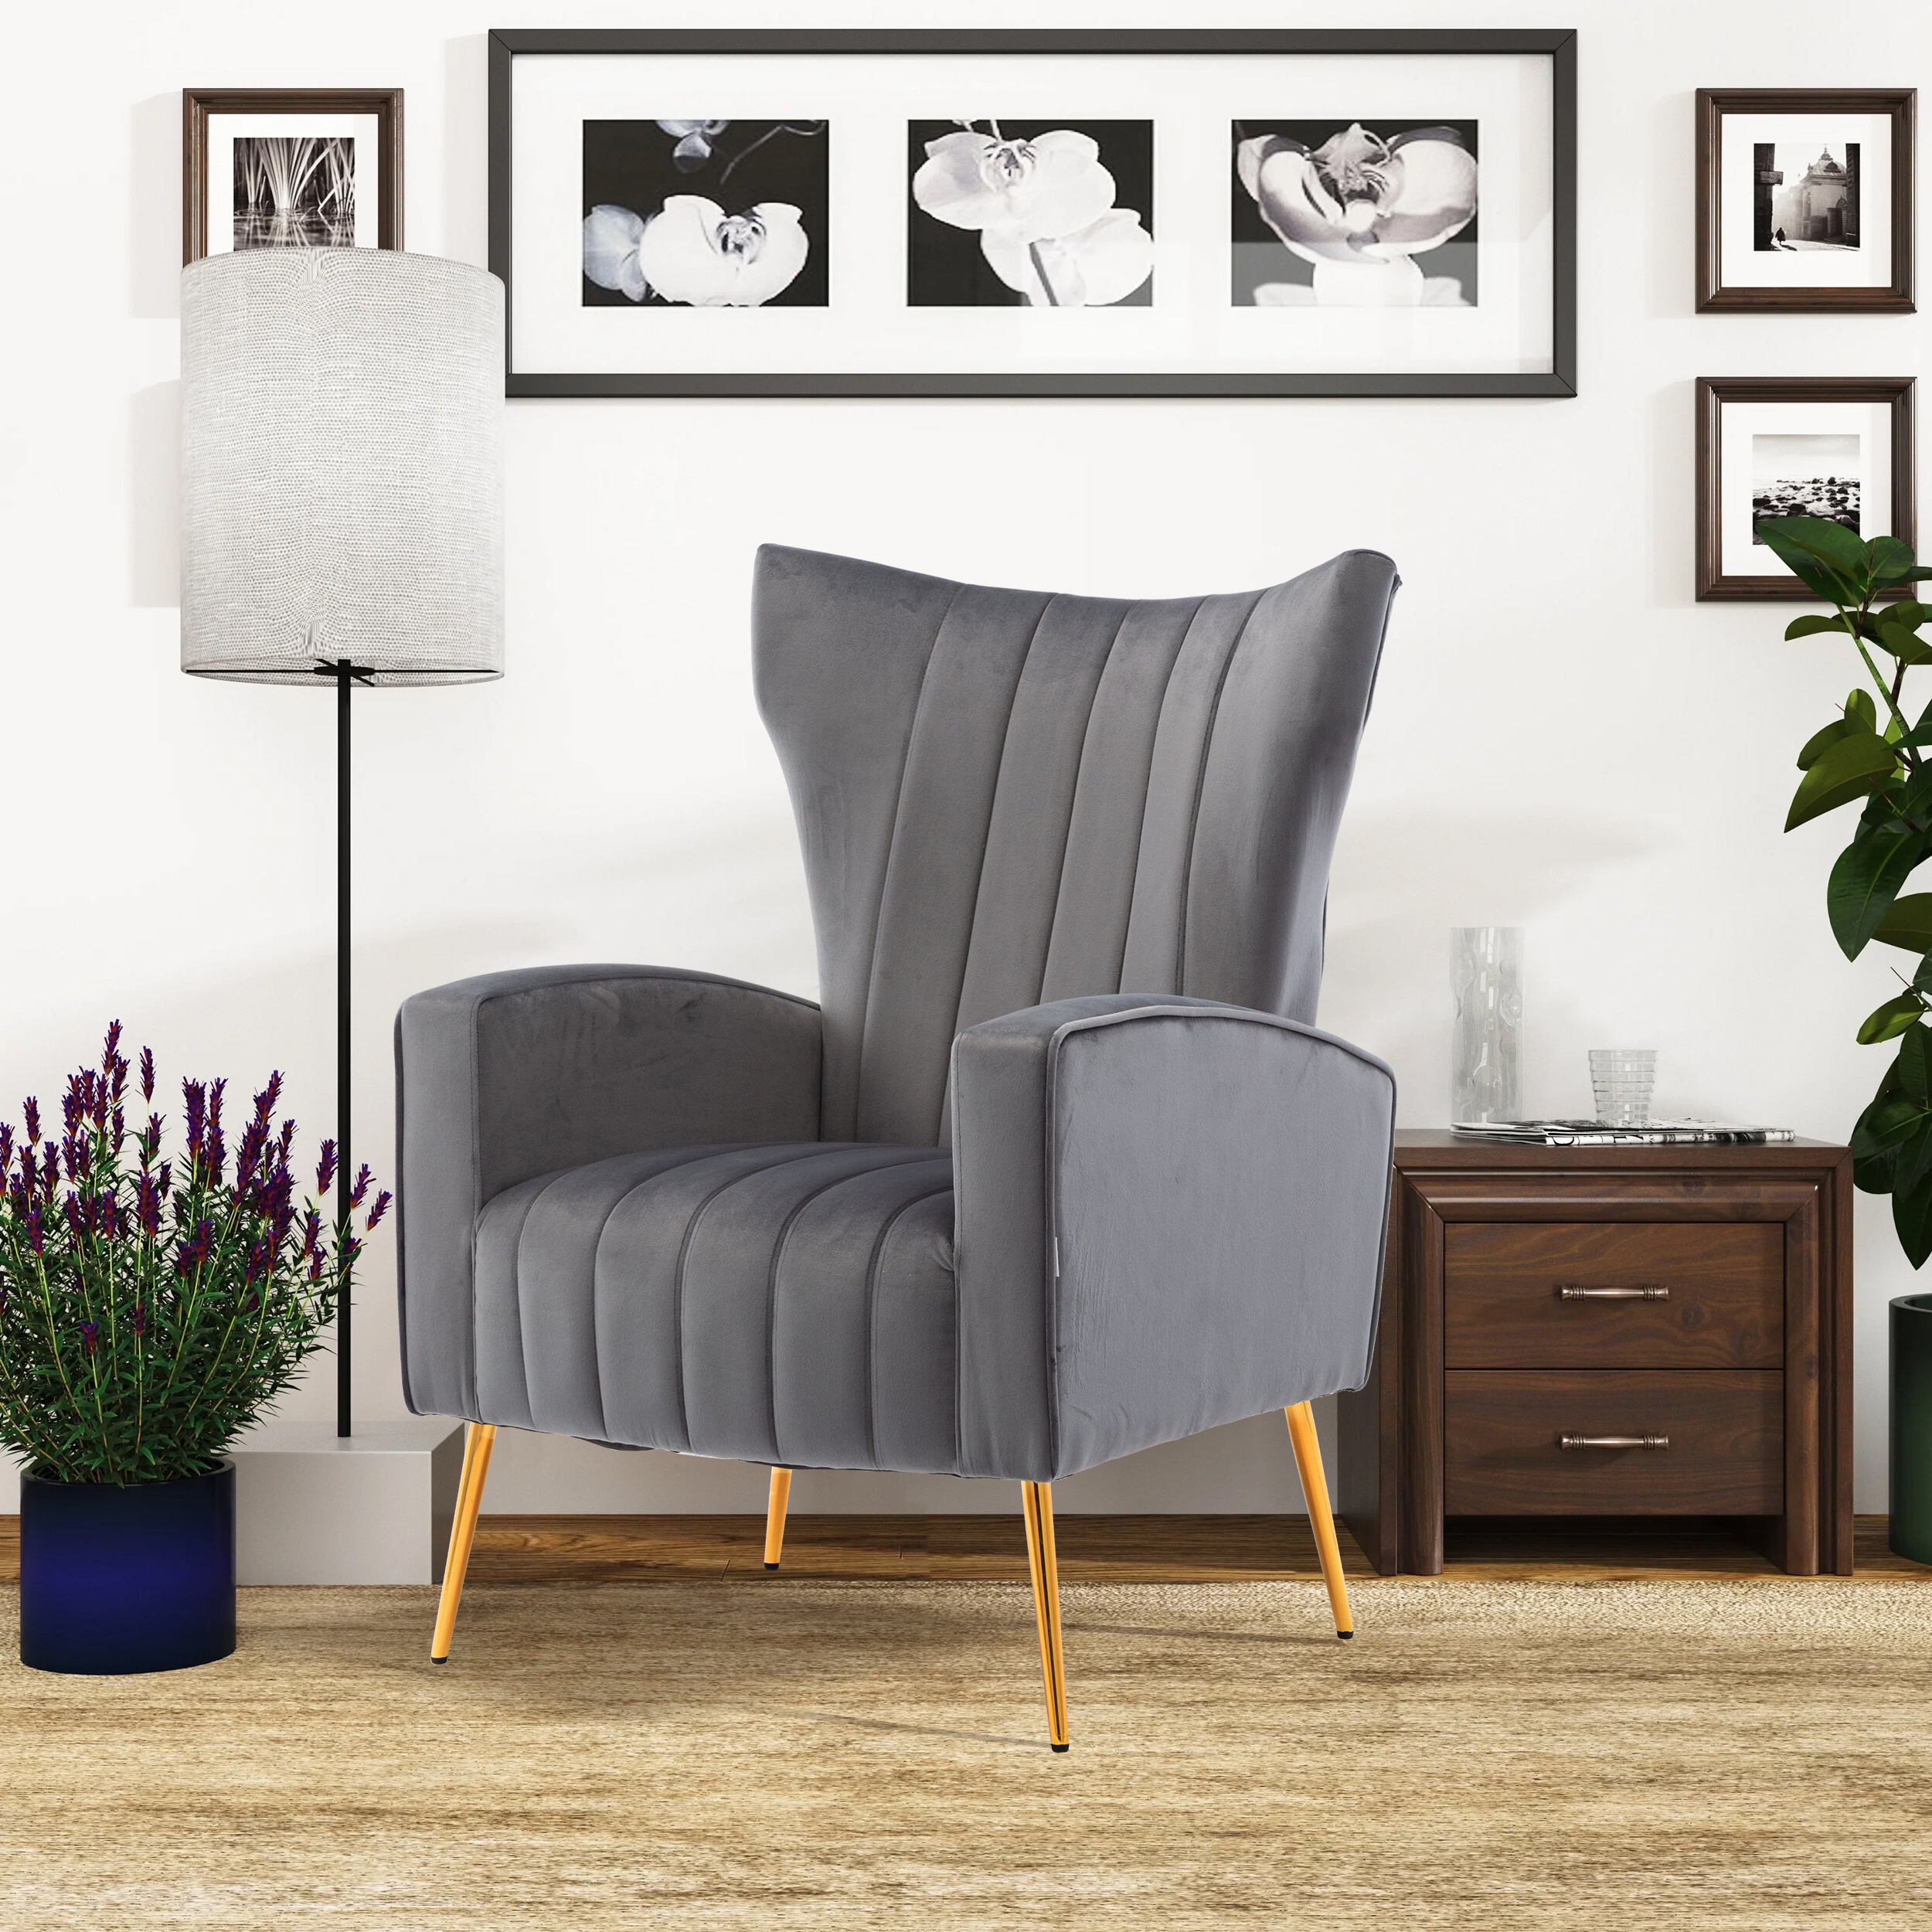 Fashionable Artemi Barrel Chair And Ottoman Sets Intended For Artemis Knitted Armchair (View 6 of 20)